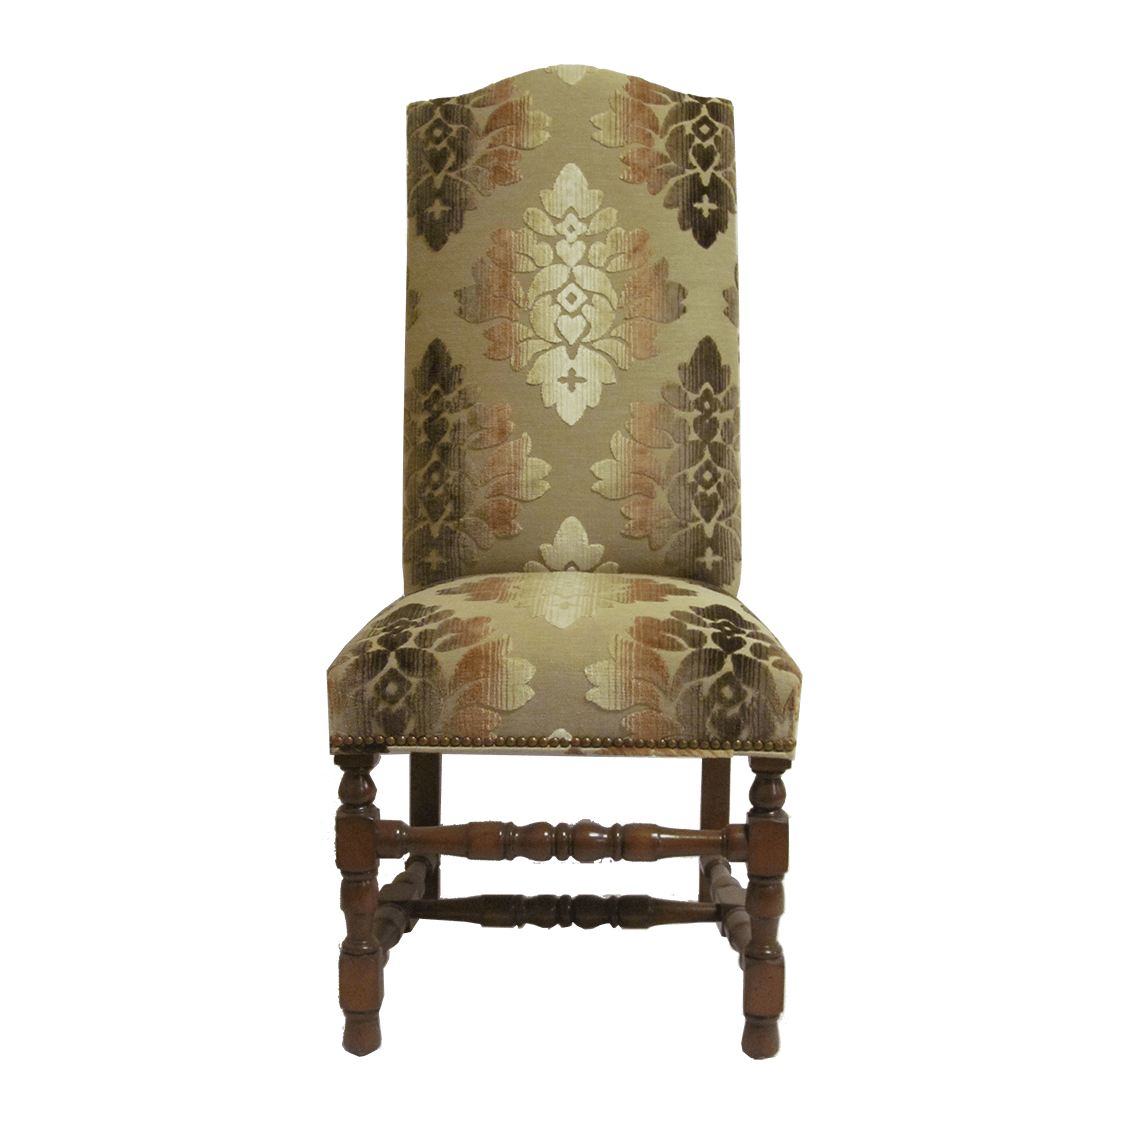 accent chairs with arms clearance chair lift maintenance upholstered kdrshowrooms